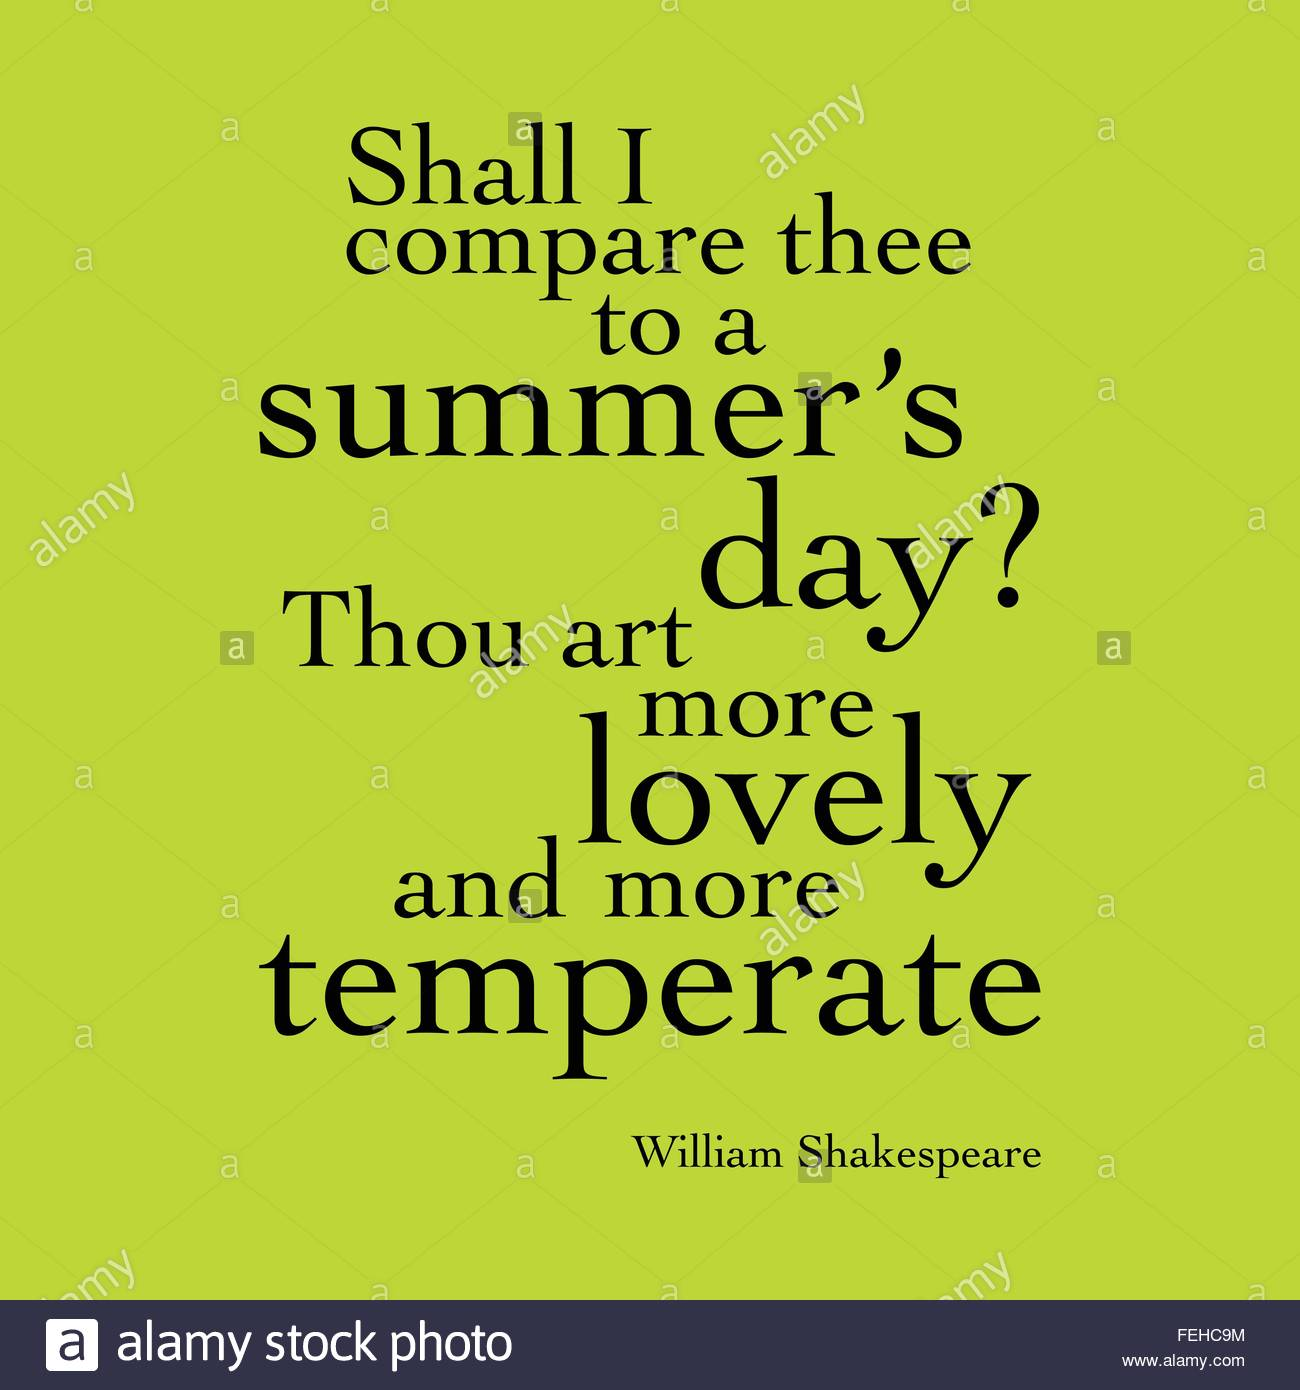 imagery of shall i compare thee to a summer s day Shall i compare thee to a summer's day is a lyrical poem, comprising complete features of sonnet form it has fourteen lines in total, divided into three quatrains then followed by a couplet almost every line in this sonnet directly conveys the subject matter with many clear and vivid images.